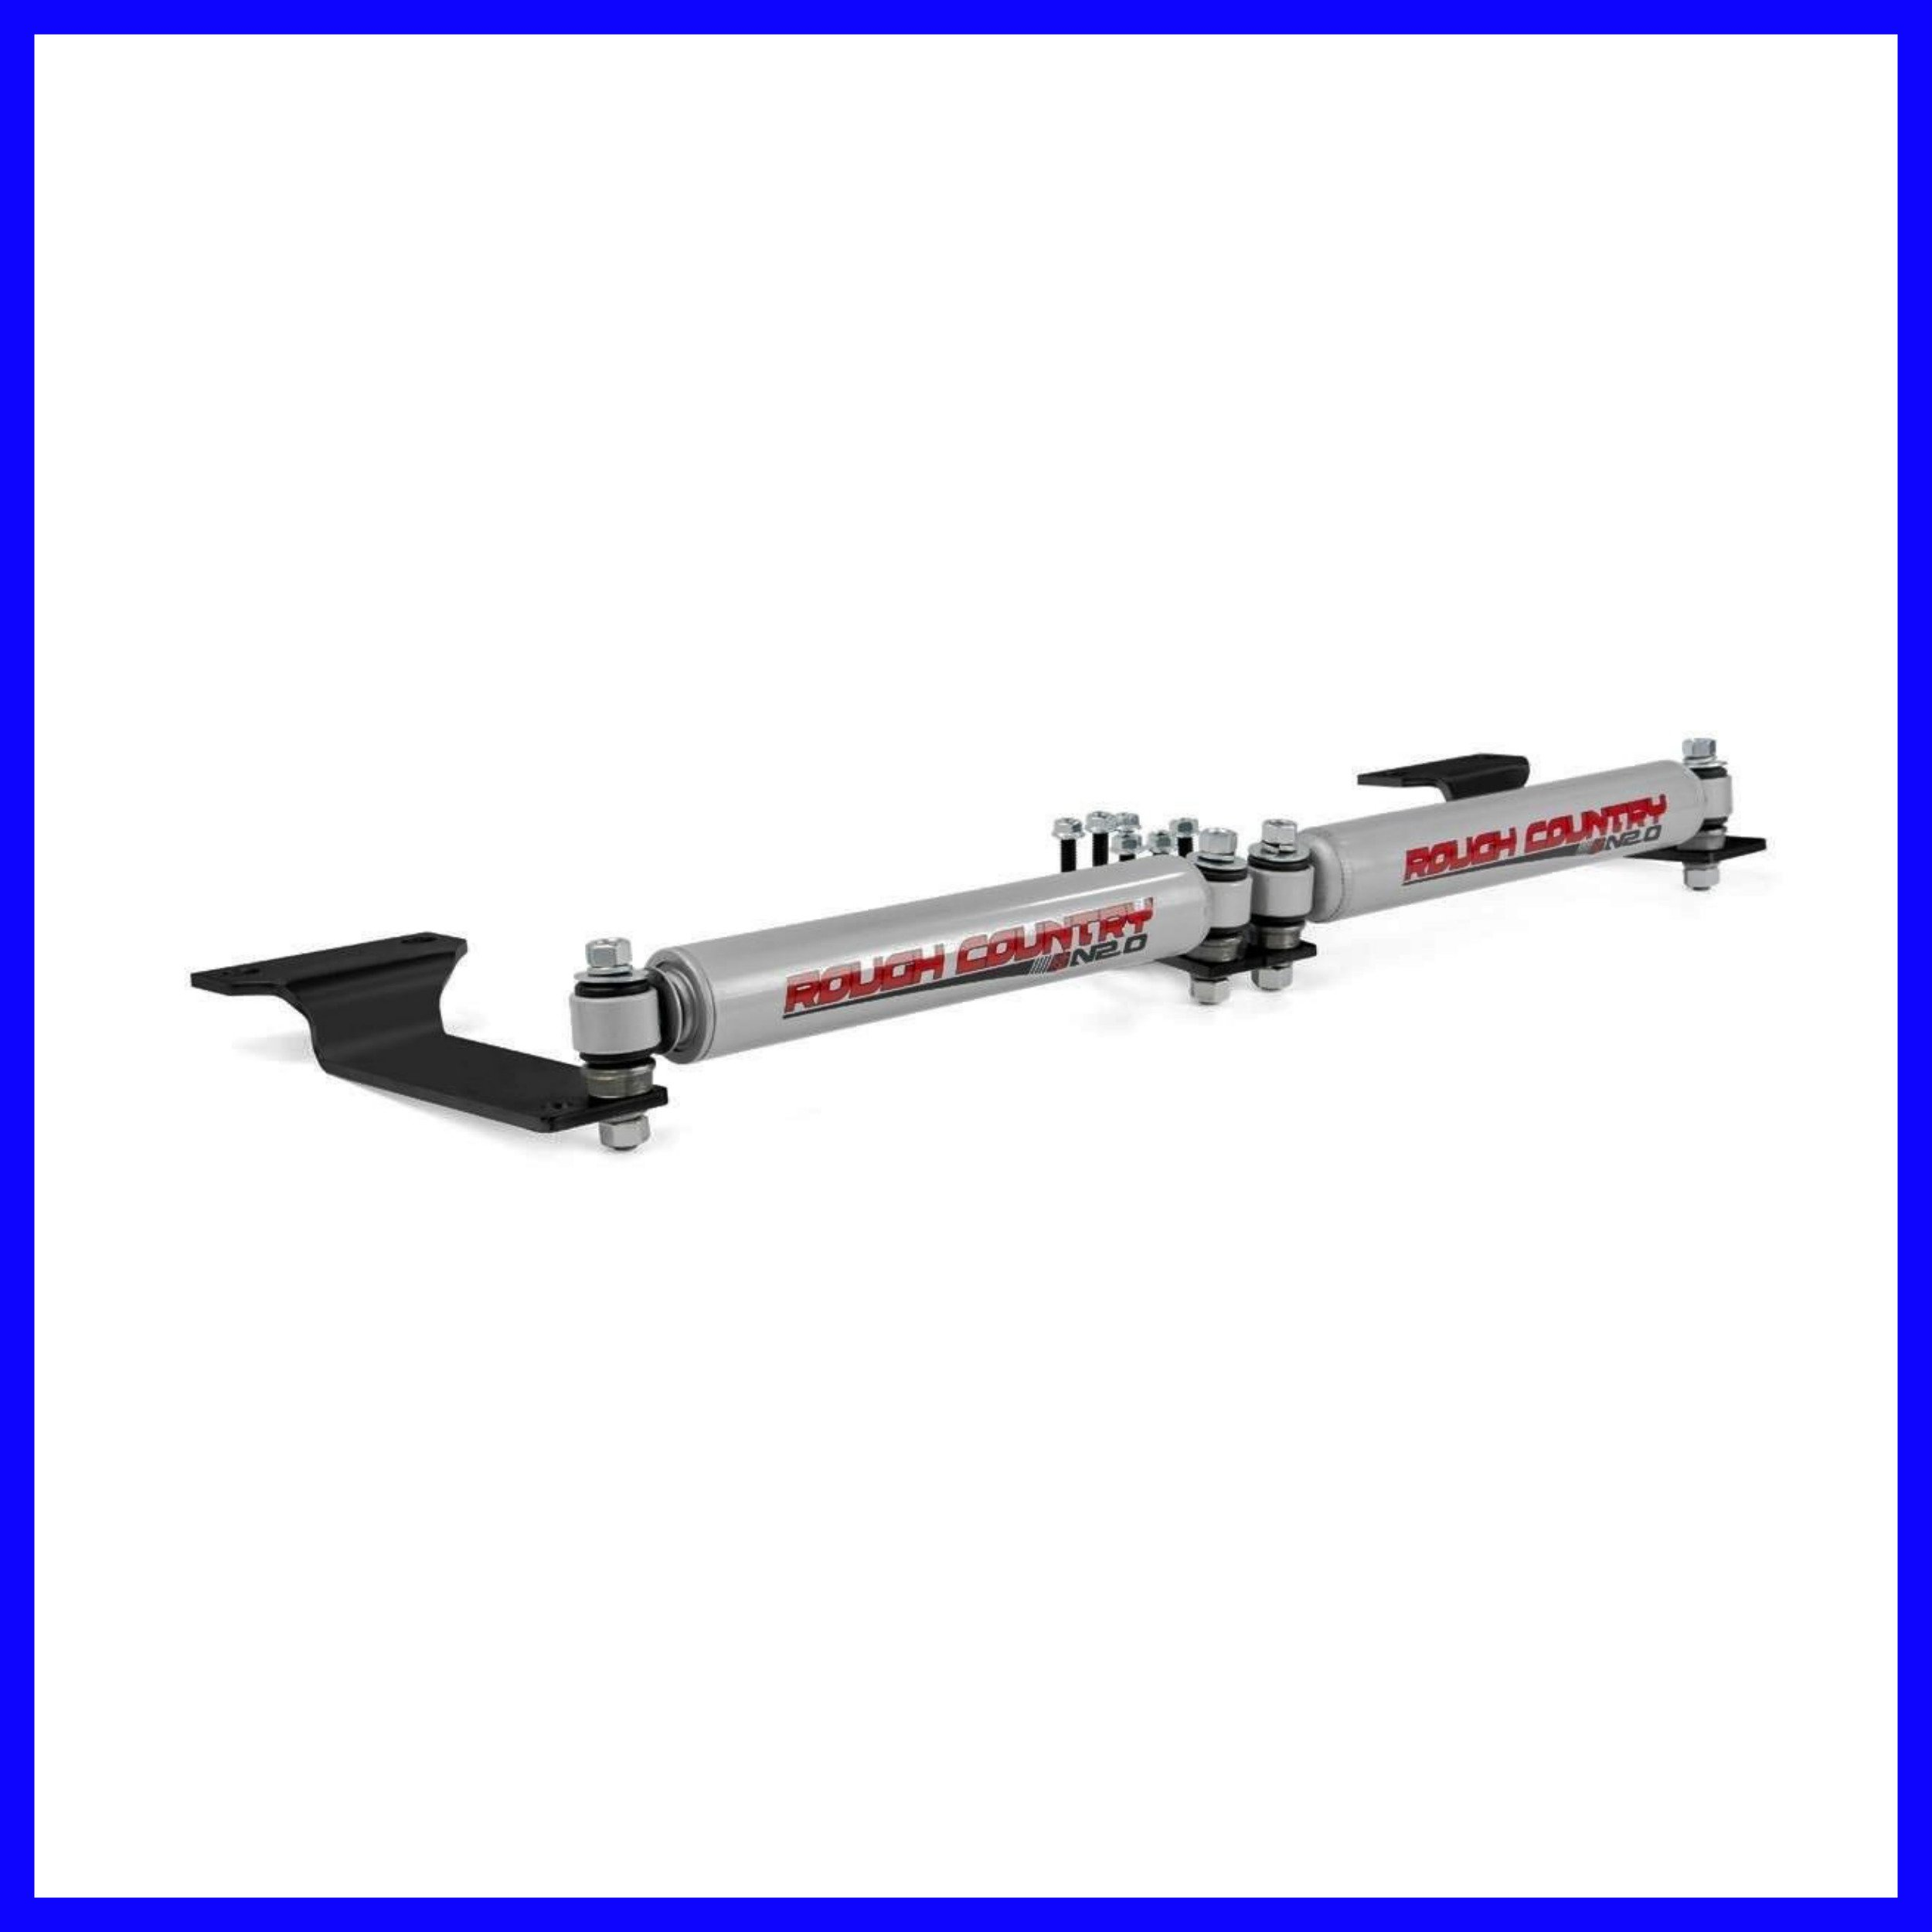 Ford Steering Stabilizer Super Duty Dual F250 F350 1999-2004 4WD Reduces Bump-steer 87490.20- House Deals